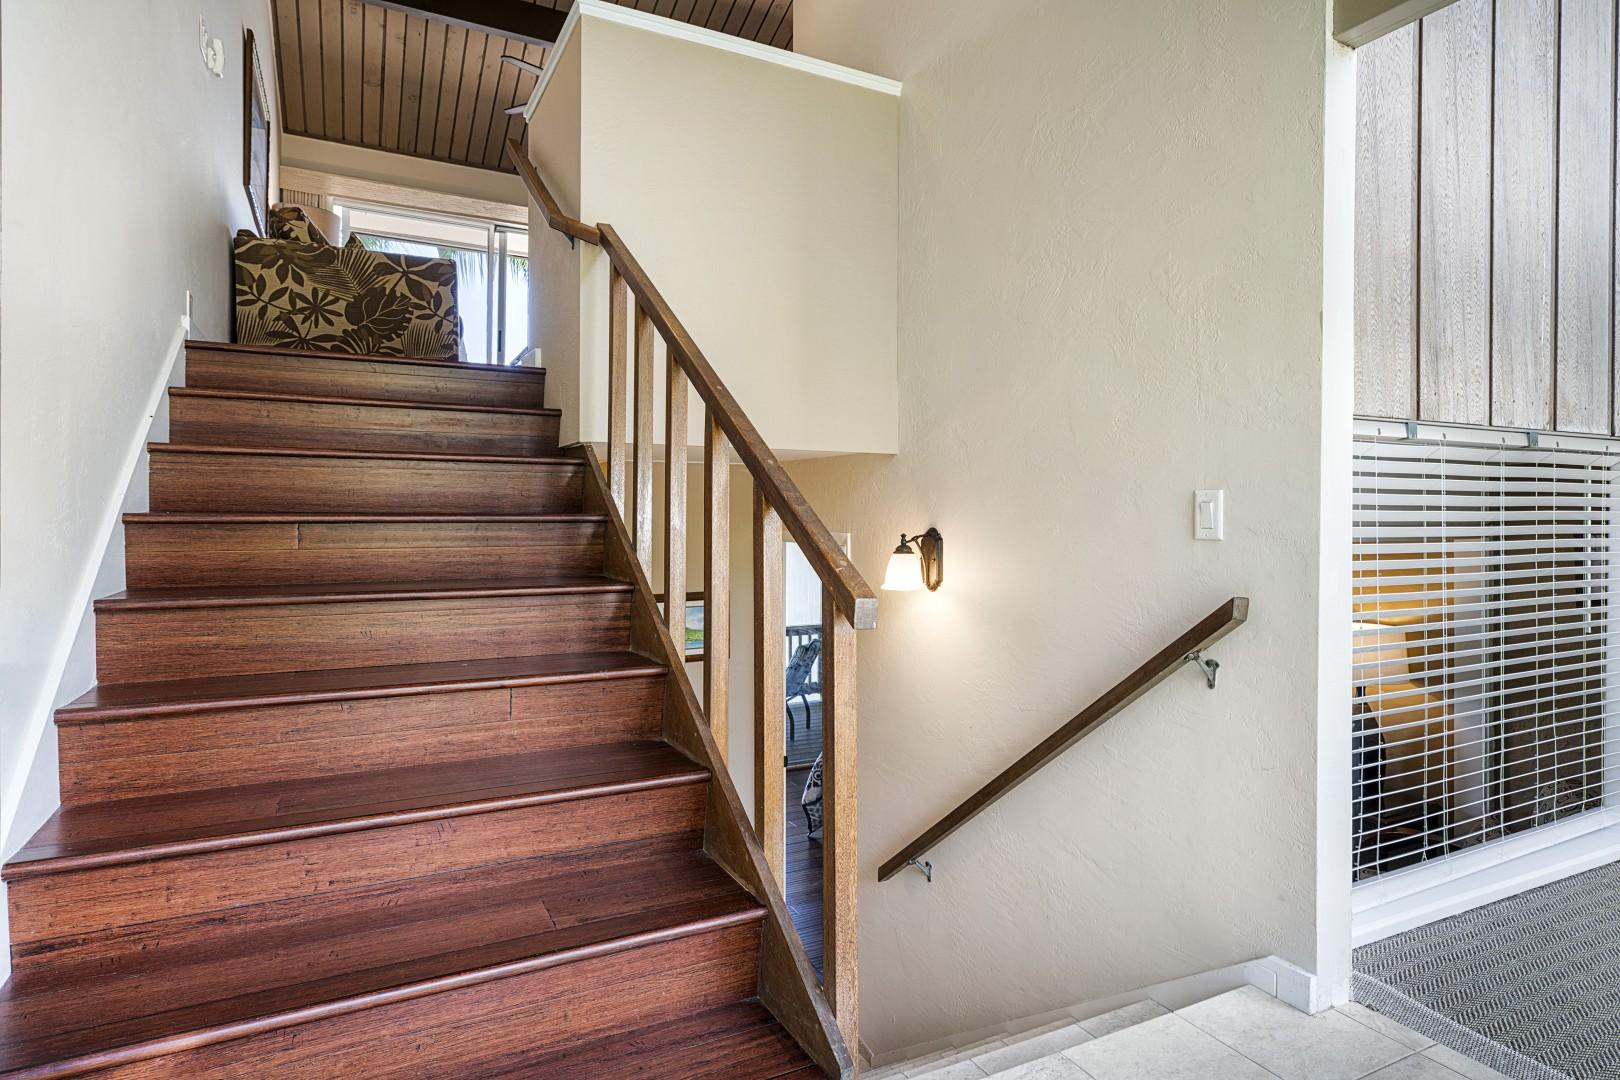 Stairs leading from the entry to the upstairs living and downstairs bedroom